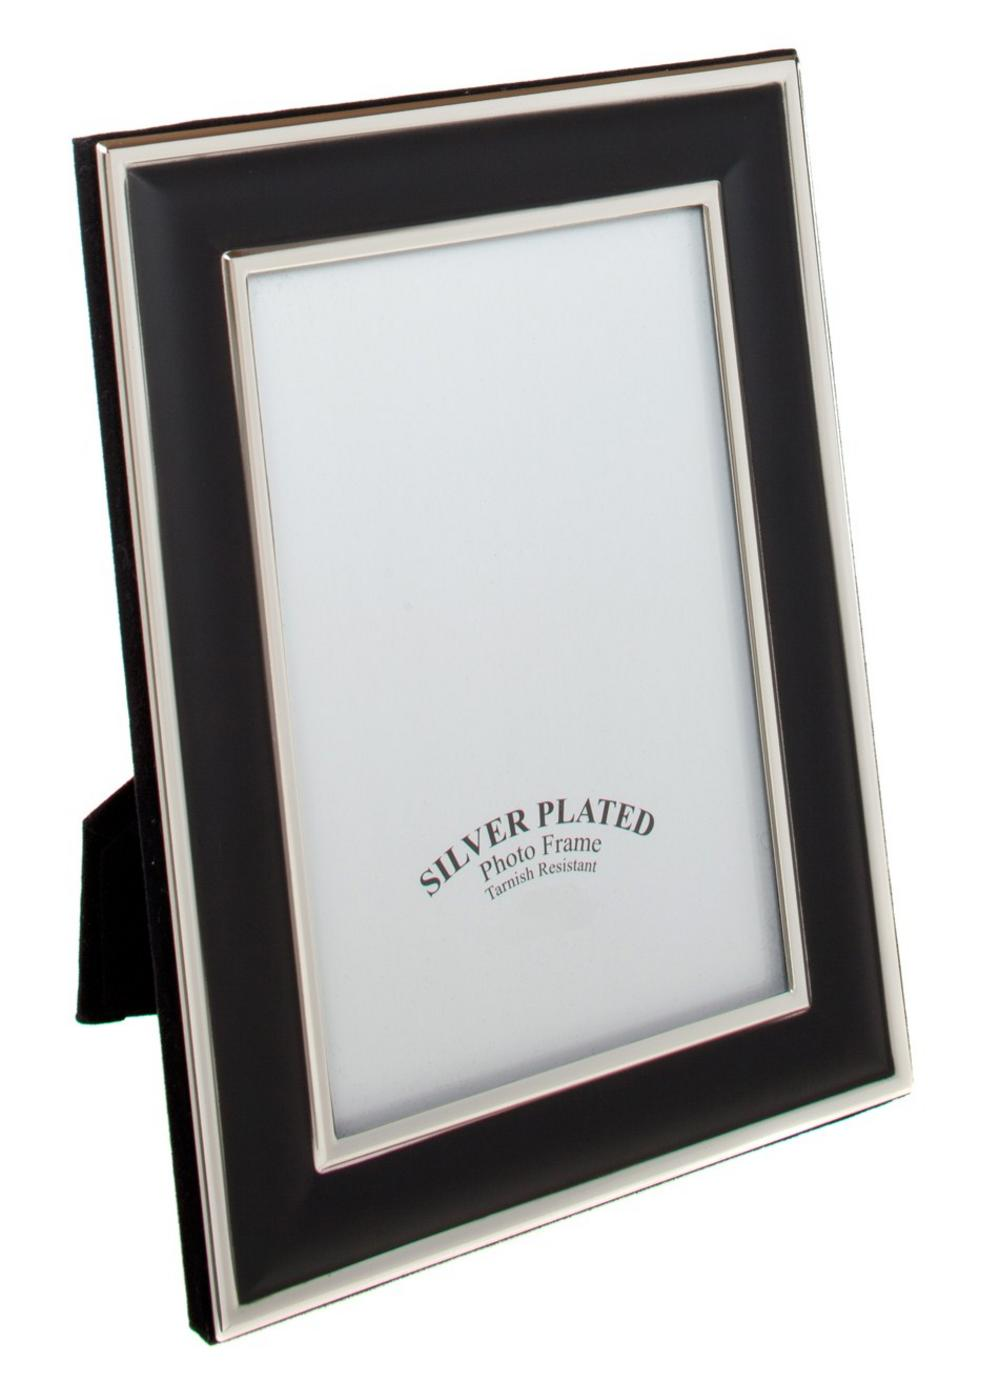 "Silver Plated Black Picture Photo Frame 4"" X 6"" 5"" X 7"" 6"" X 8"" 8"" X 10"" Unity"